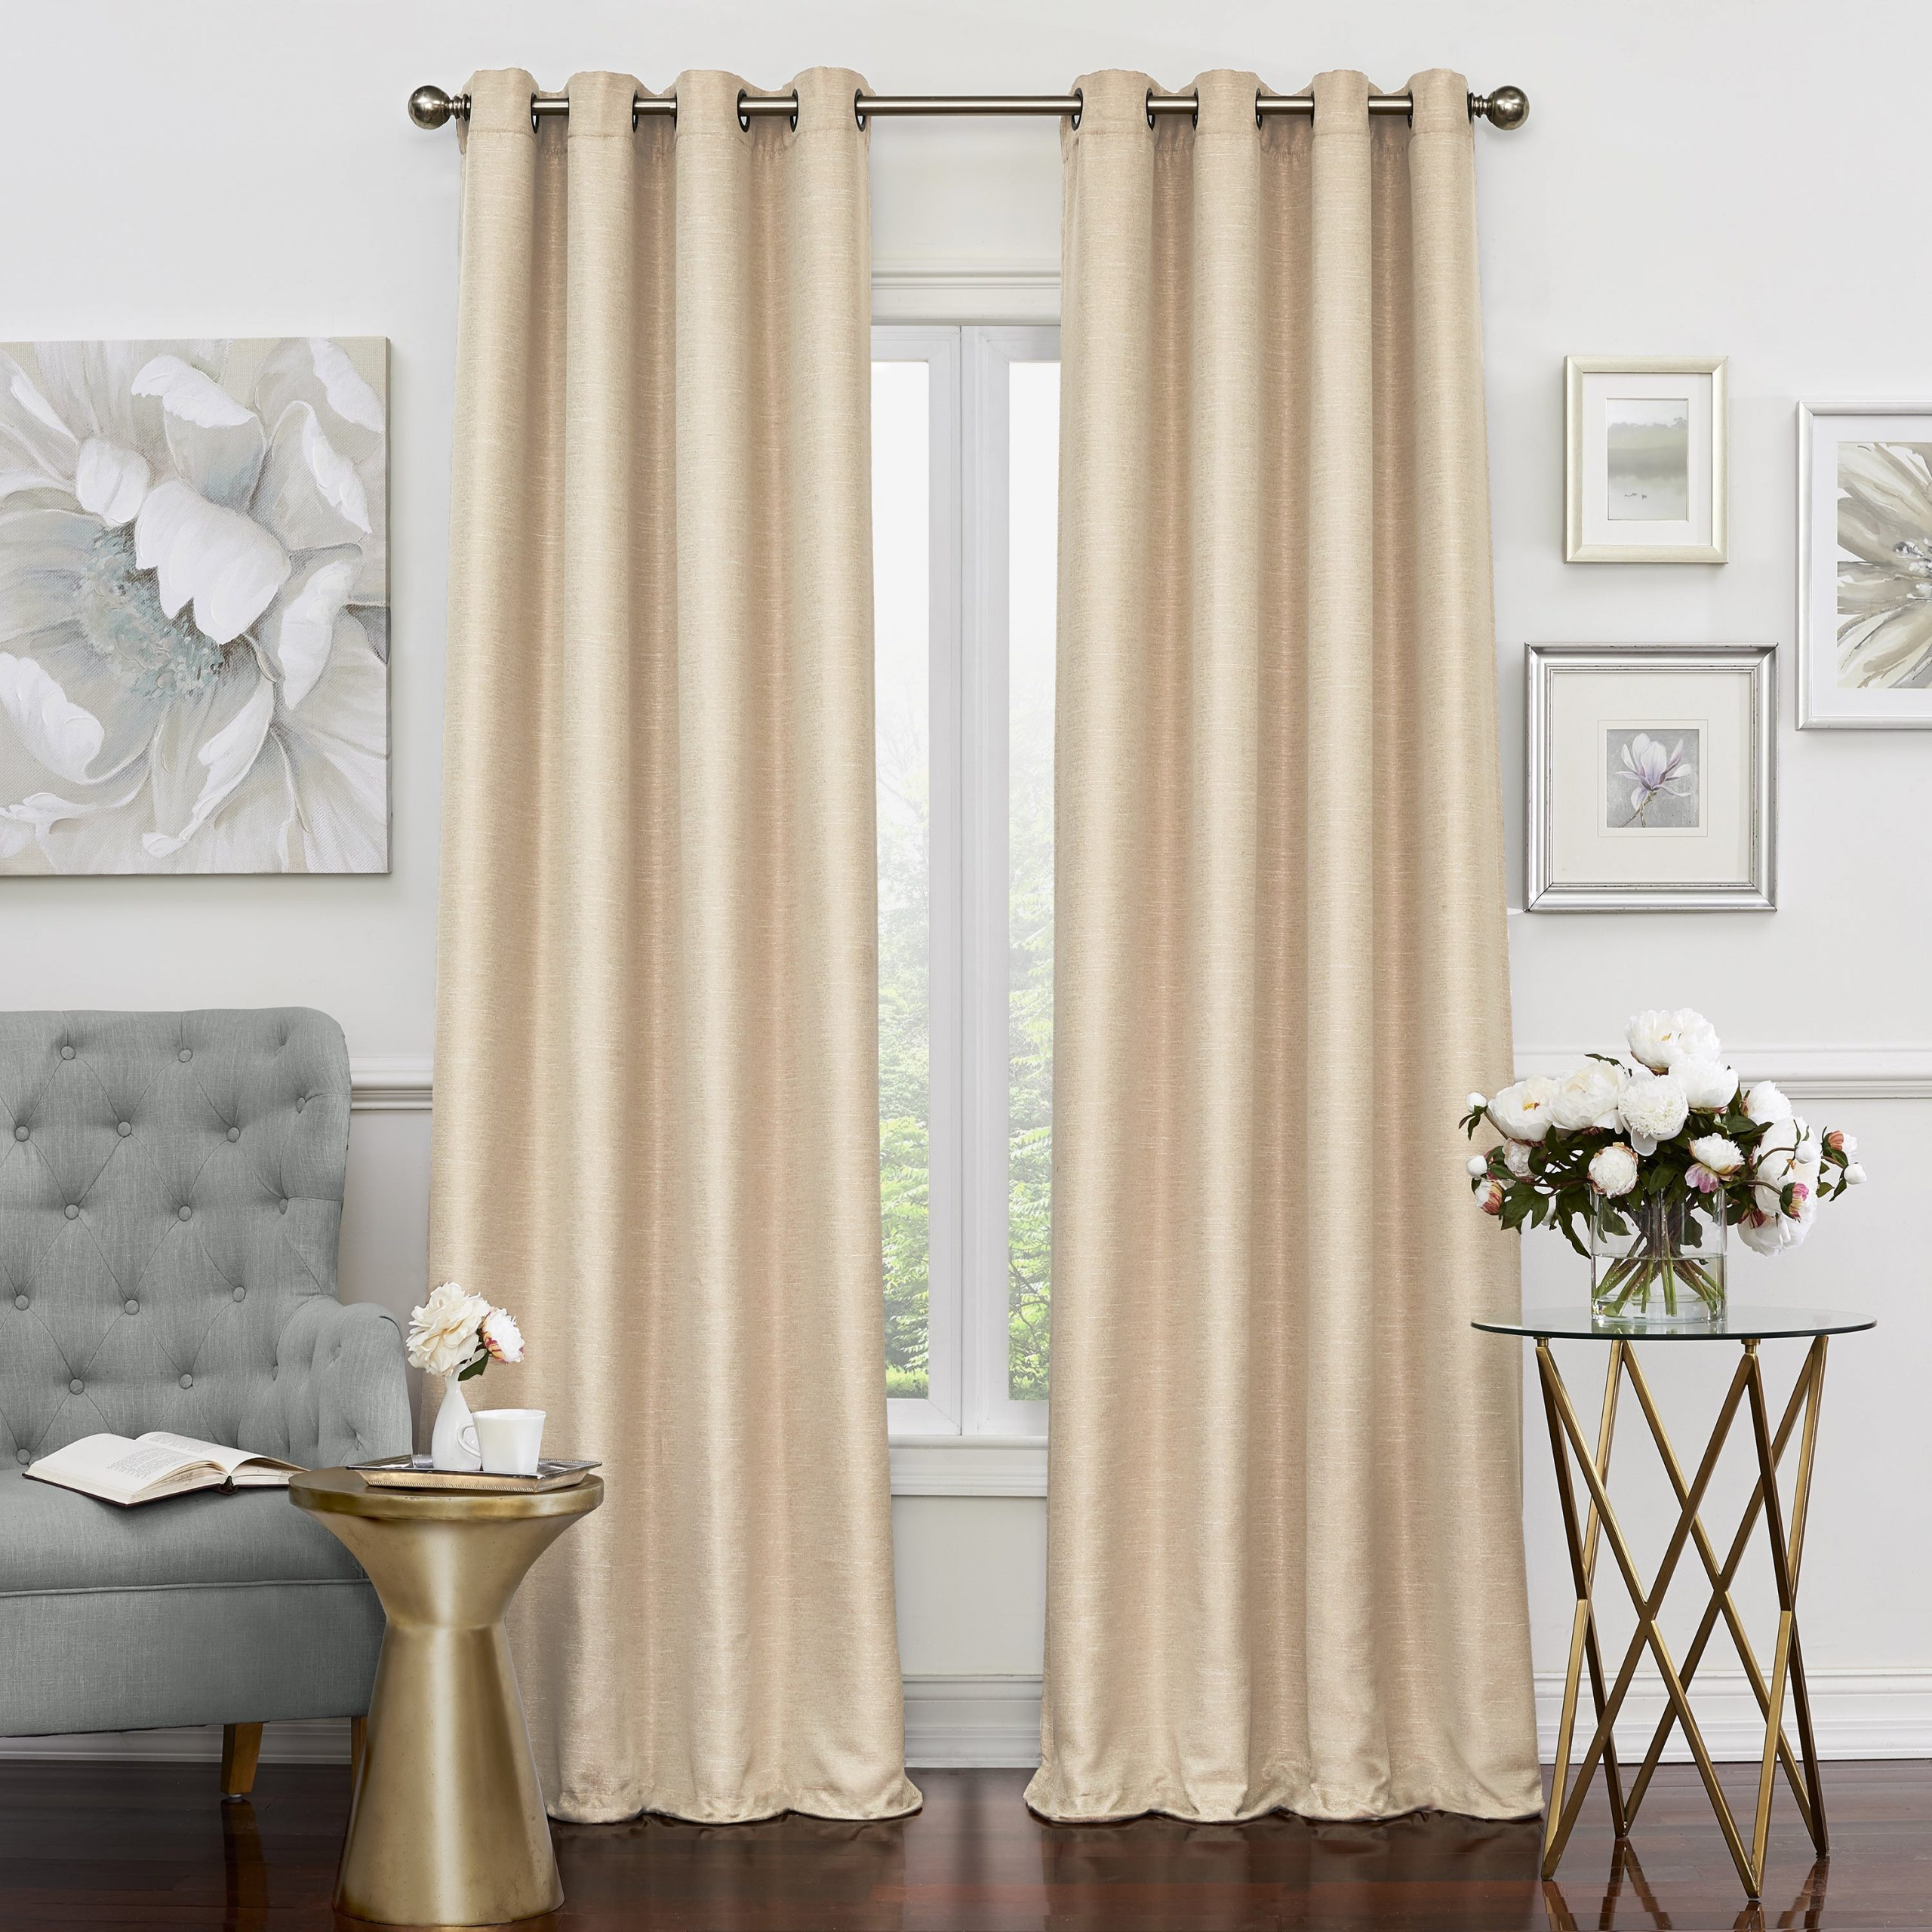 Preferred Eclipse Newport Blackout Curtain Panels With Regard To Details About Eclipse Luxor Thermalayer Blackout Window Curtain Panel (View 18 of 20)